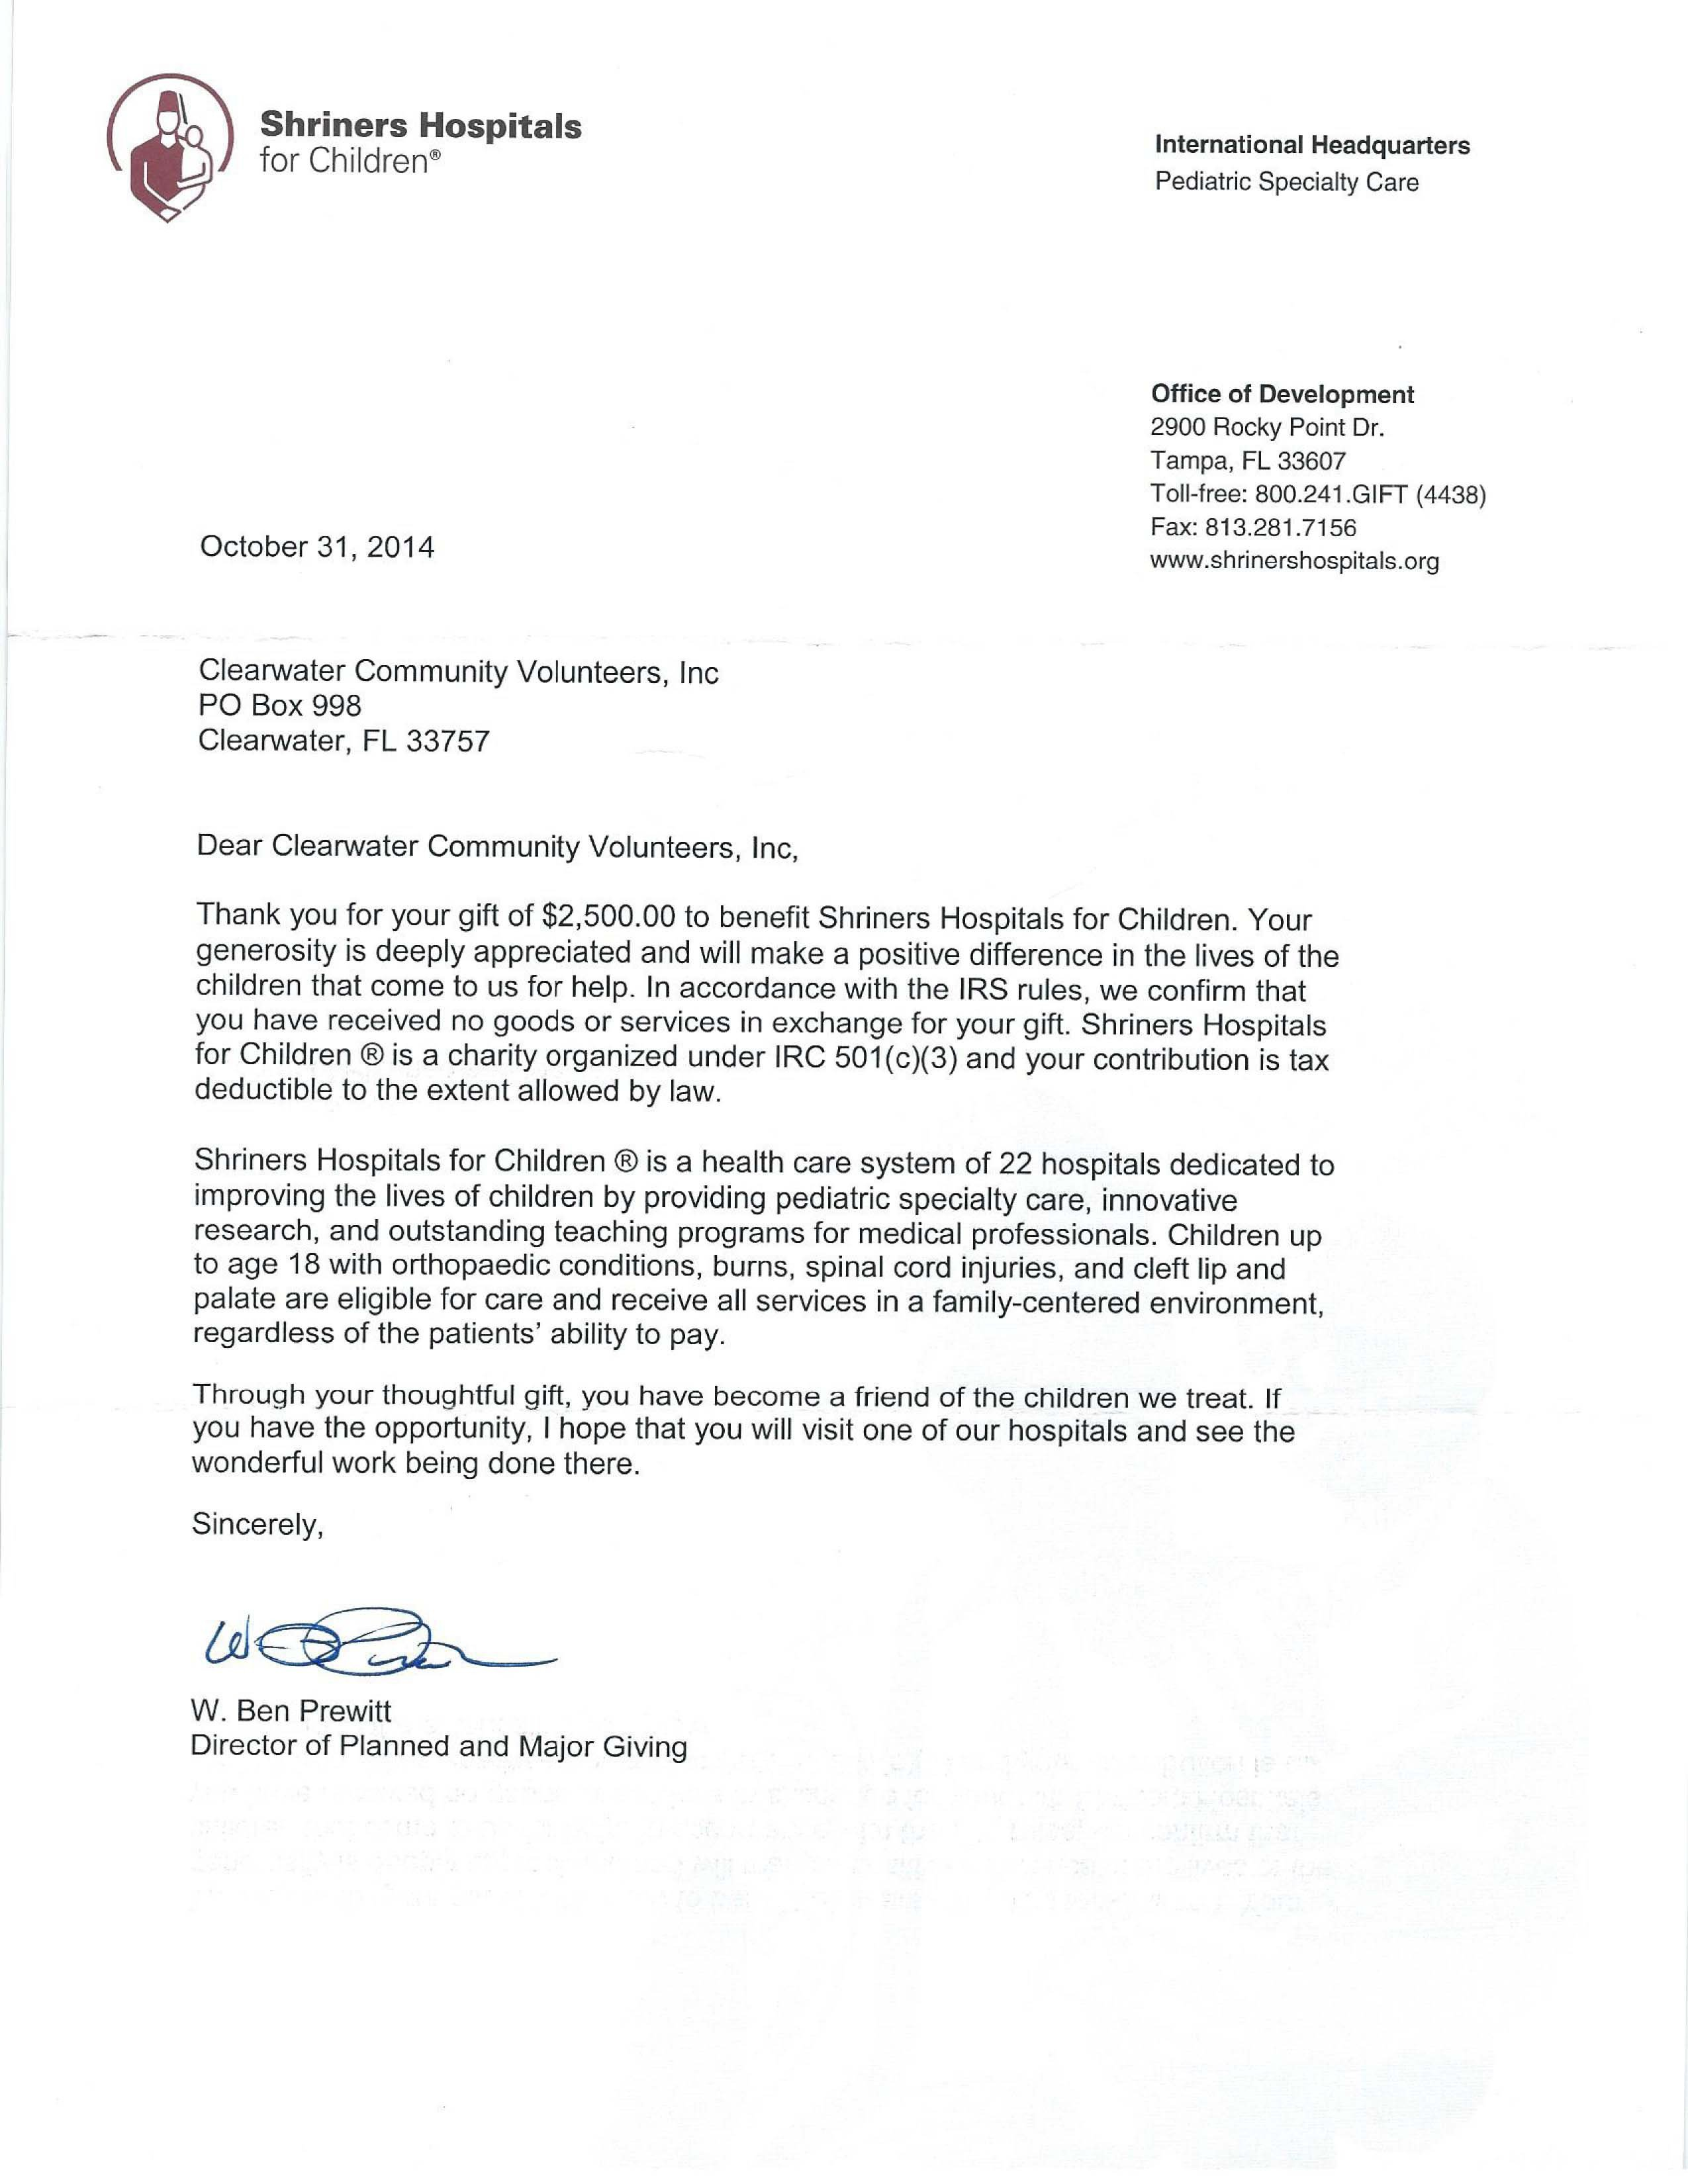 Volunteer Letter Of Appreciation Shriners Hospital Letter Of Appreciation